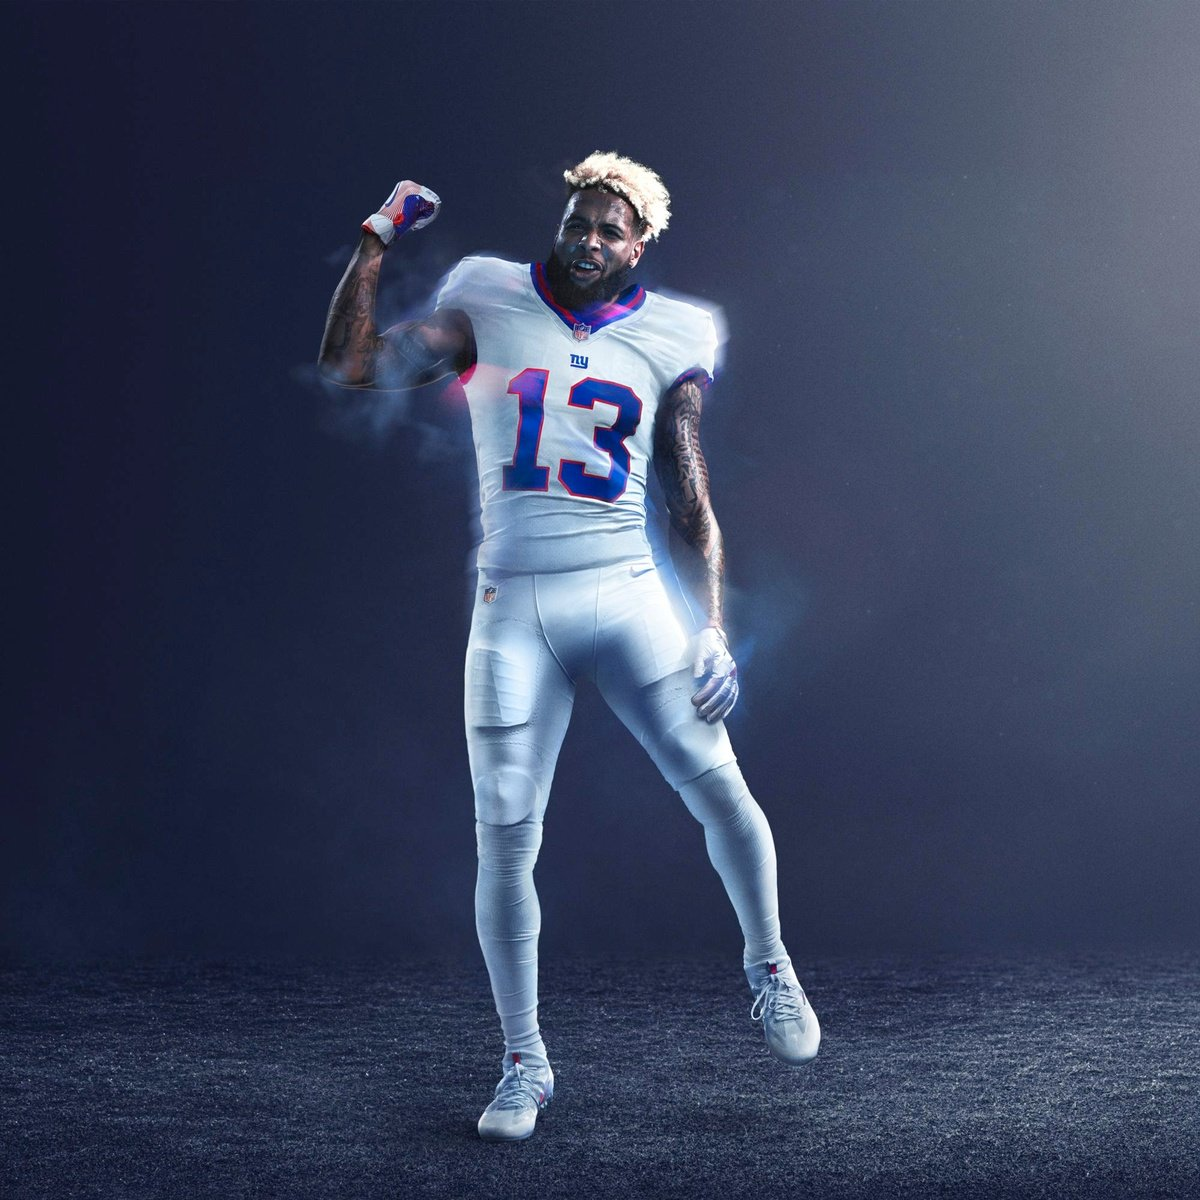 Odell Beckham Jr on Twitter: .@NIKE Color Rush jersey tho! First $